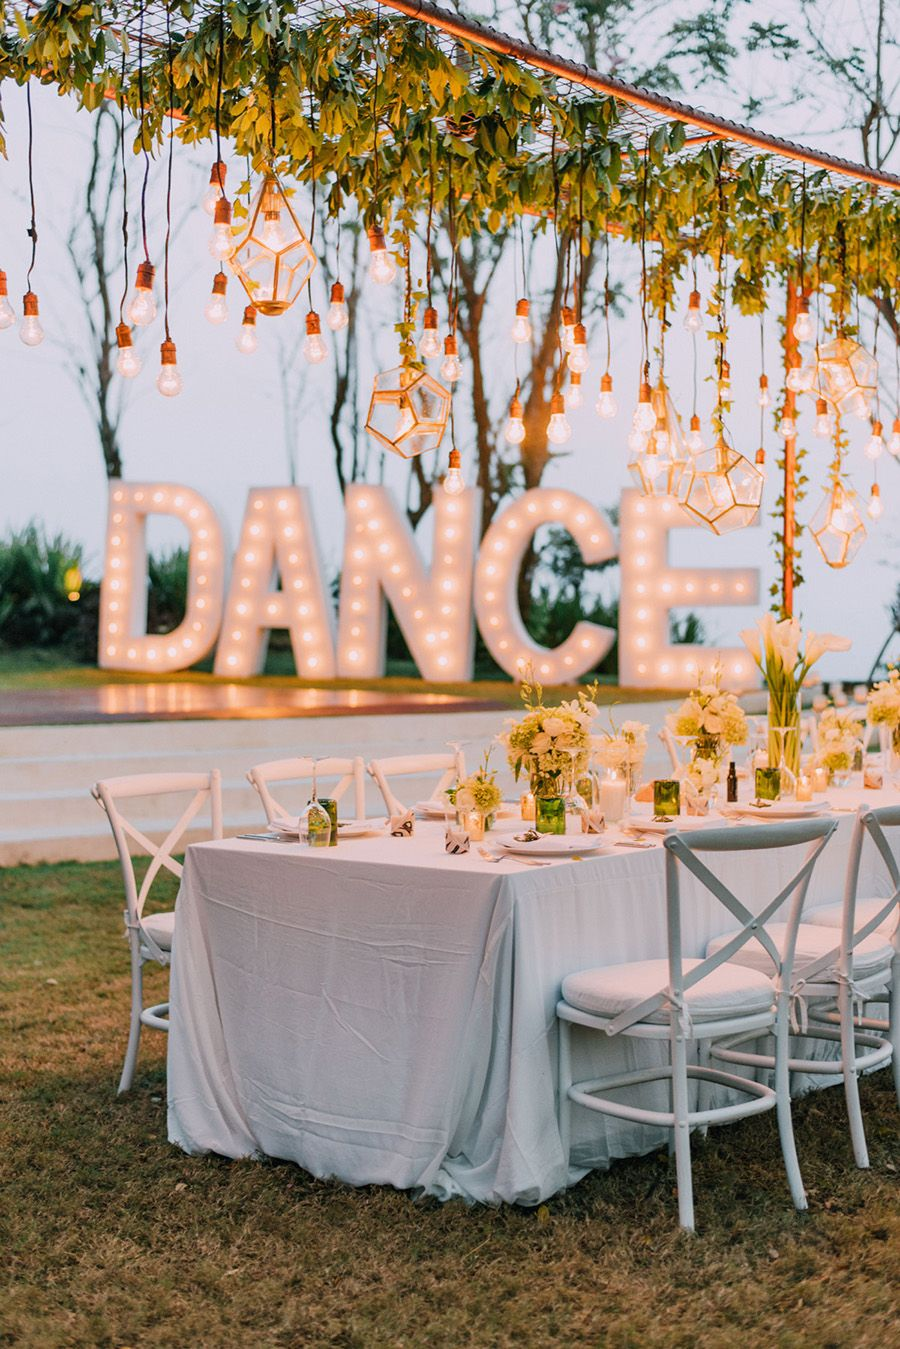 Wedding Planners Share Their Top 5 Wedding Venues In Bali Wedding Venues Wedding Planner Venues